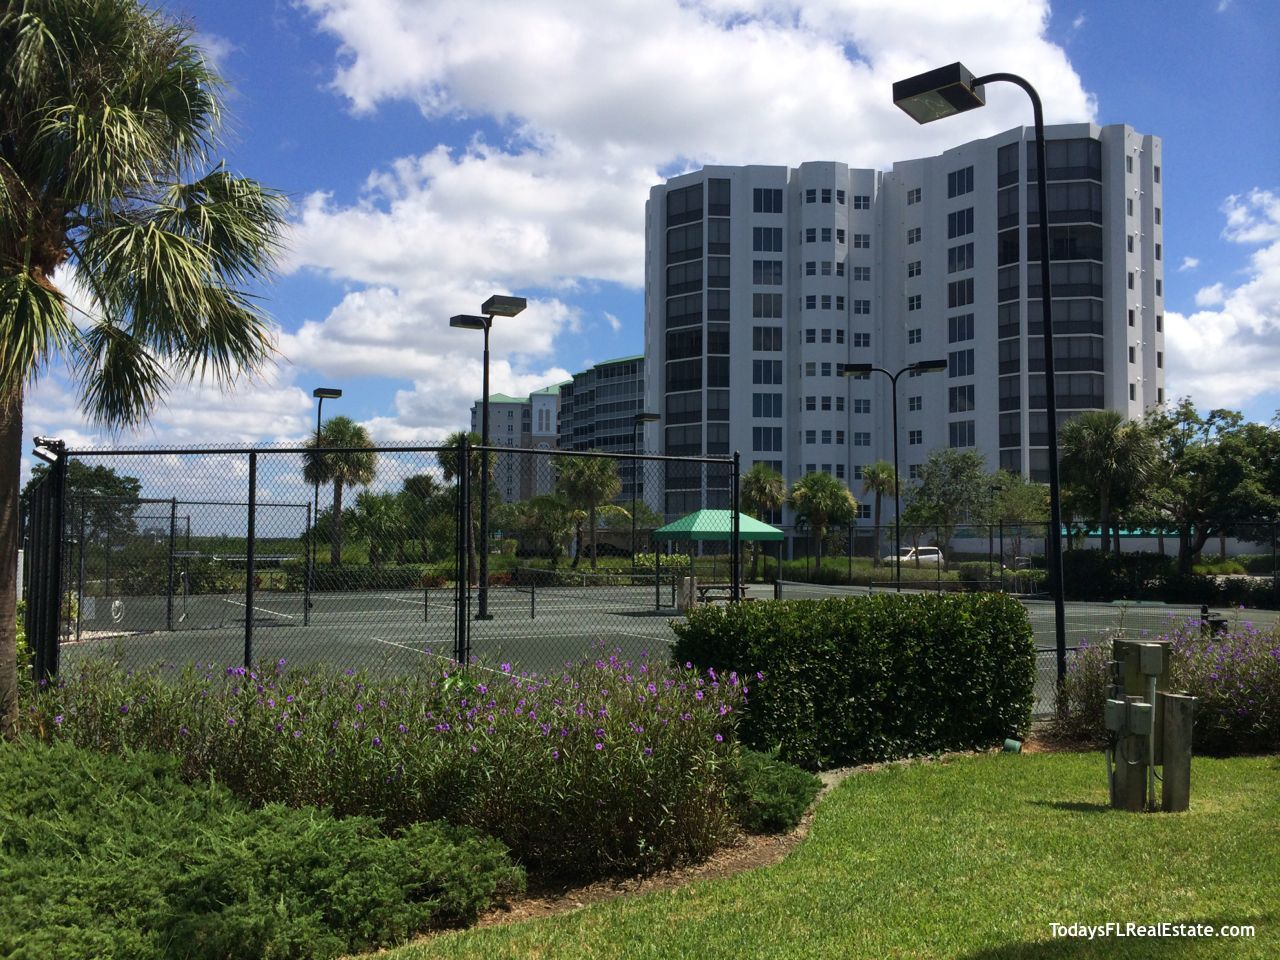 Waterside Condos Fort Myers Beach Florida, Fort Myers Beach Condos for sale, Homes for sale Ft Myers Beach